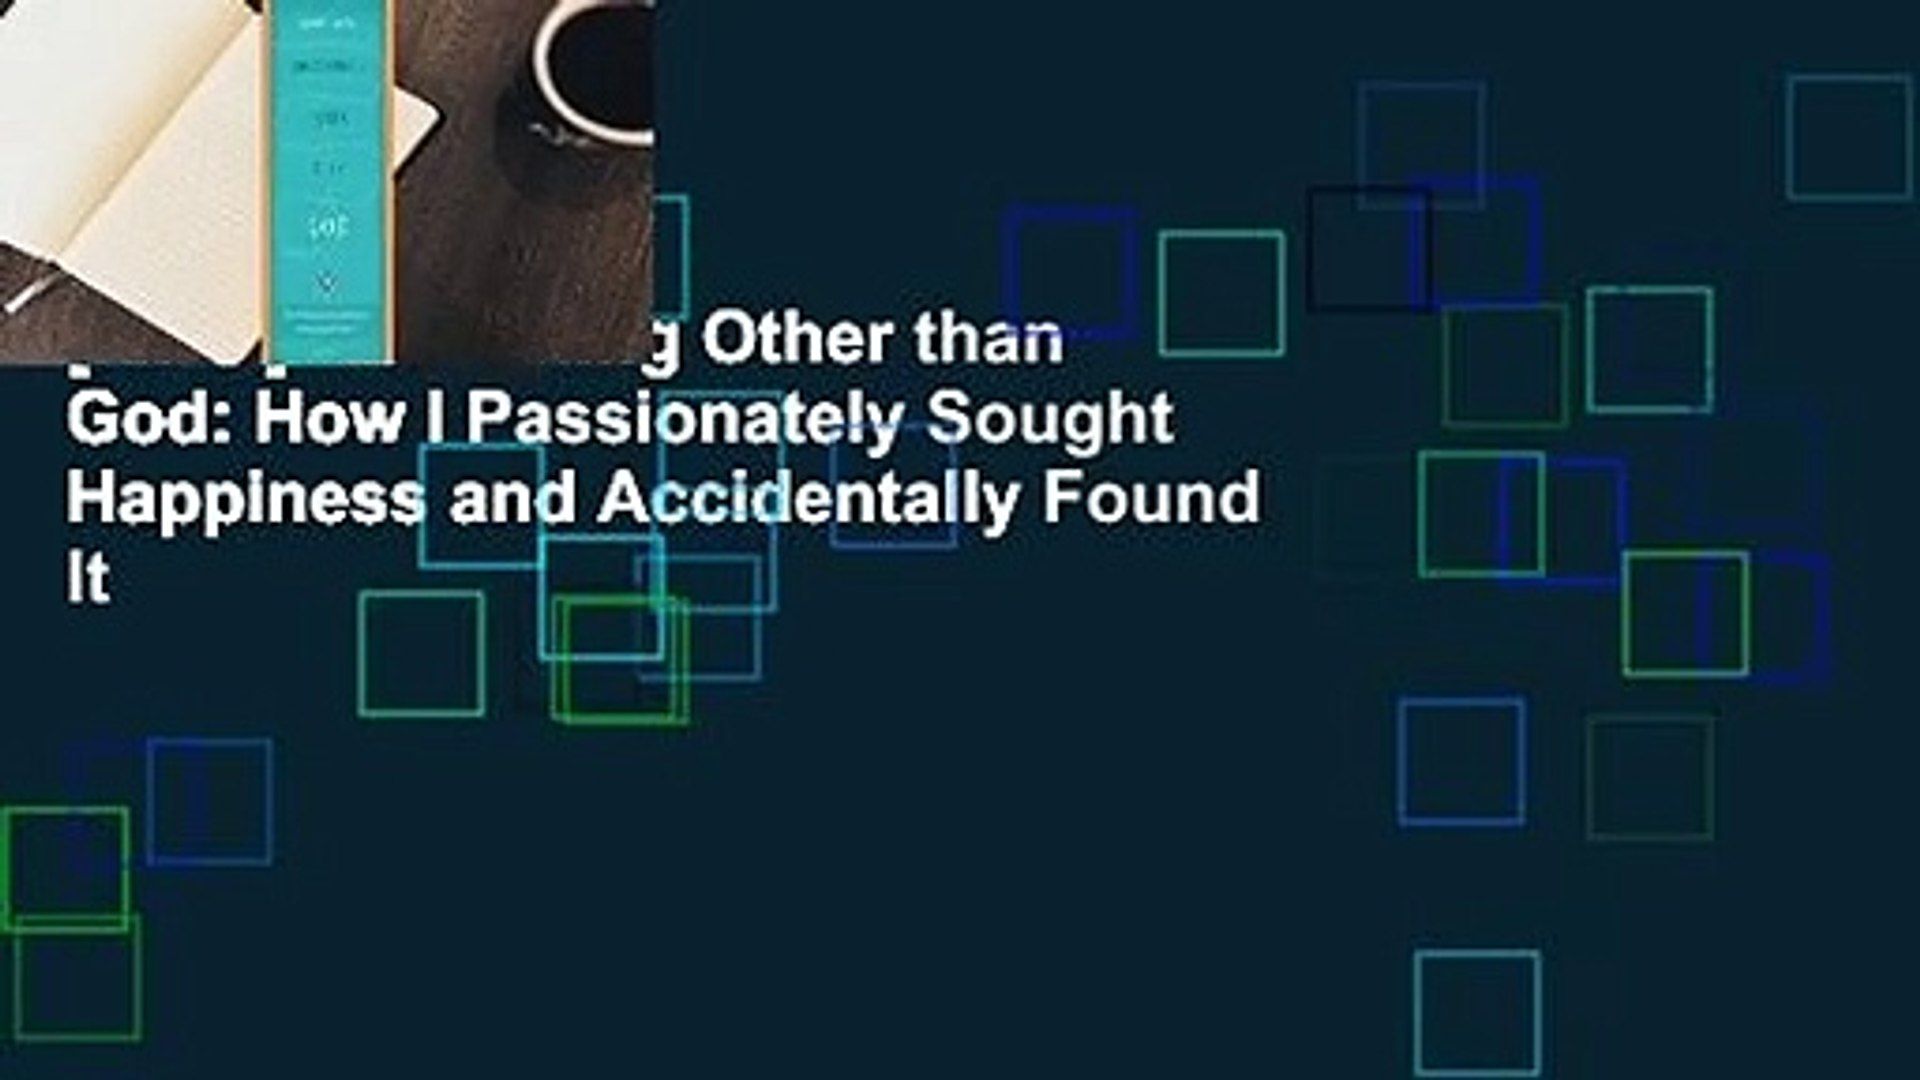 [Read] Something Other than God: How I Passionately Sought Happiness and Accidentally Found It